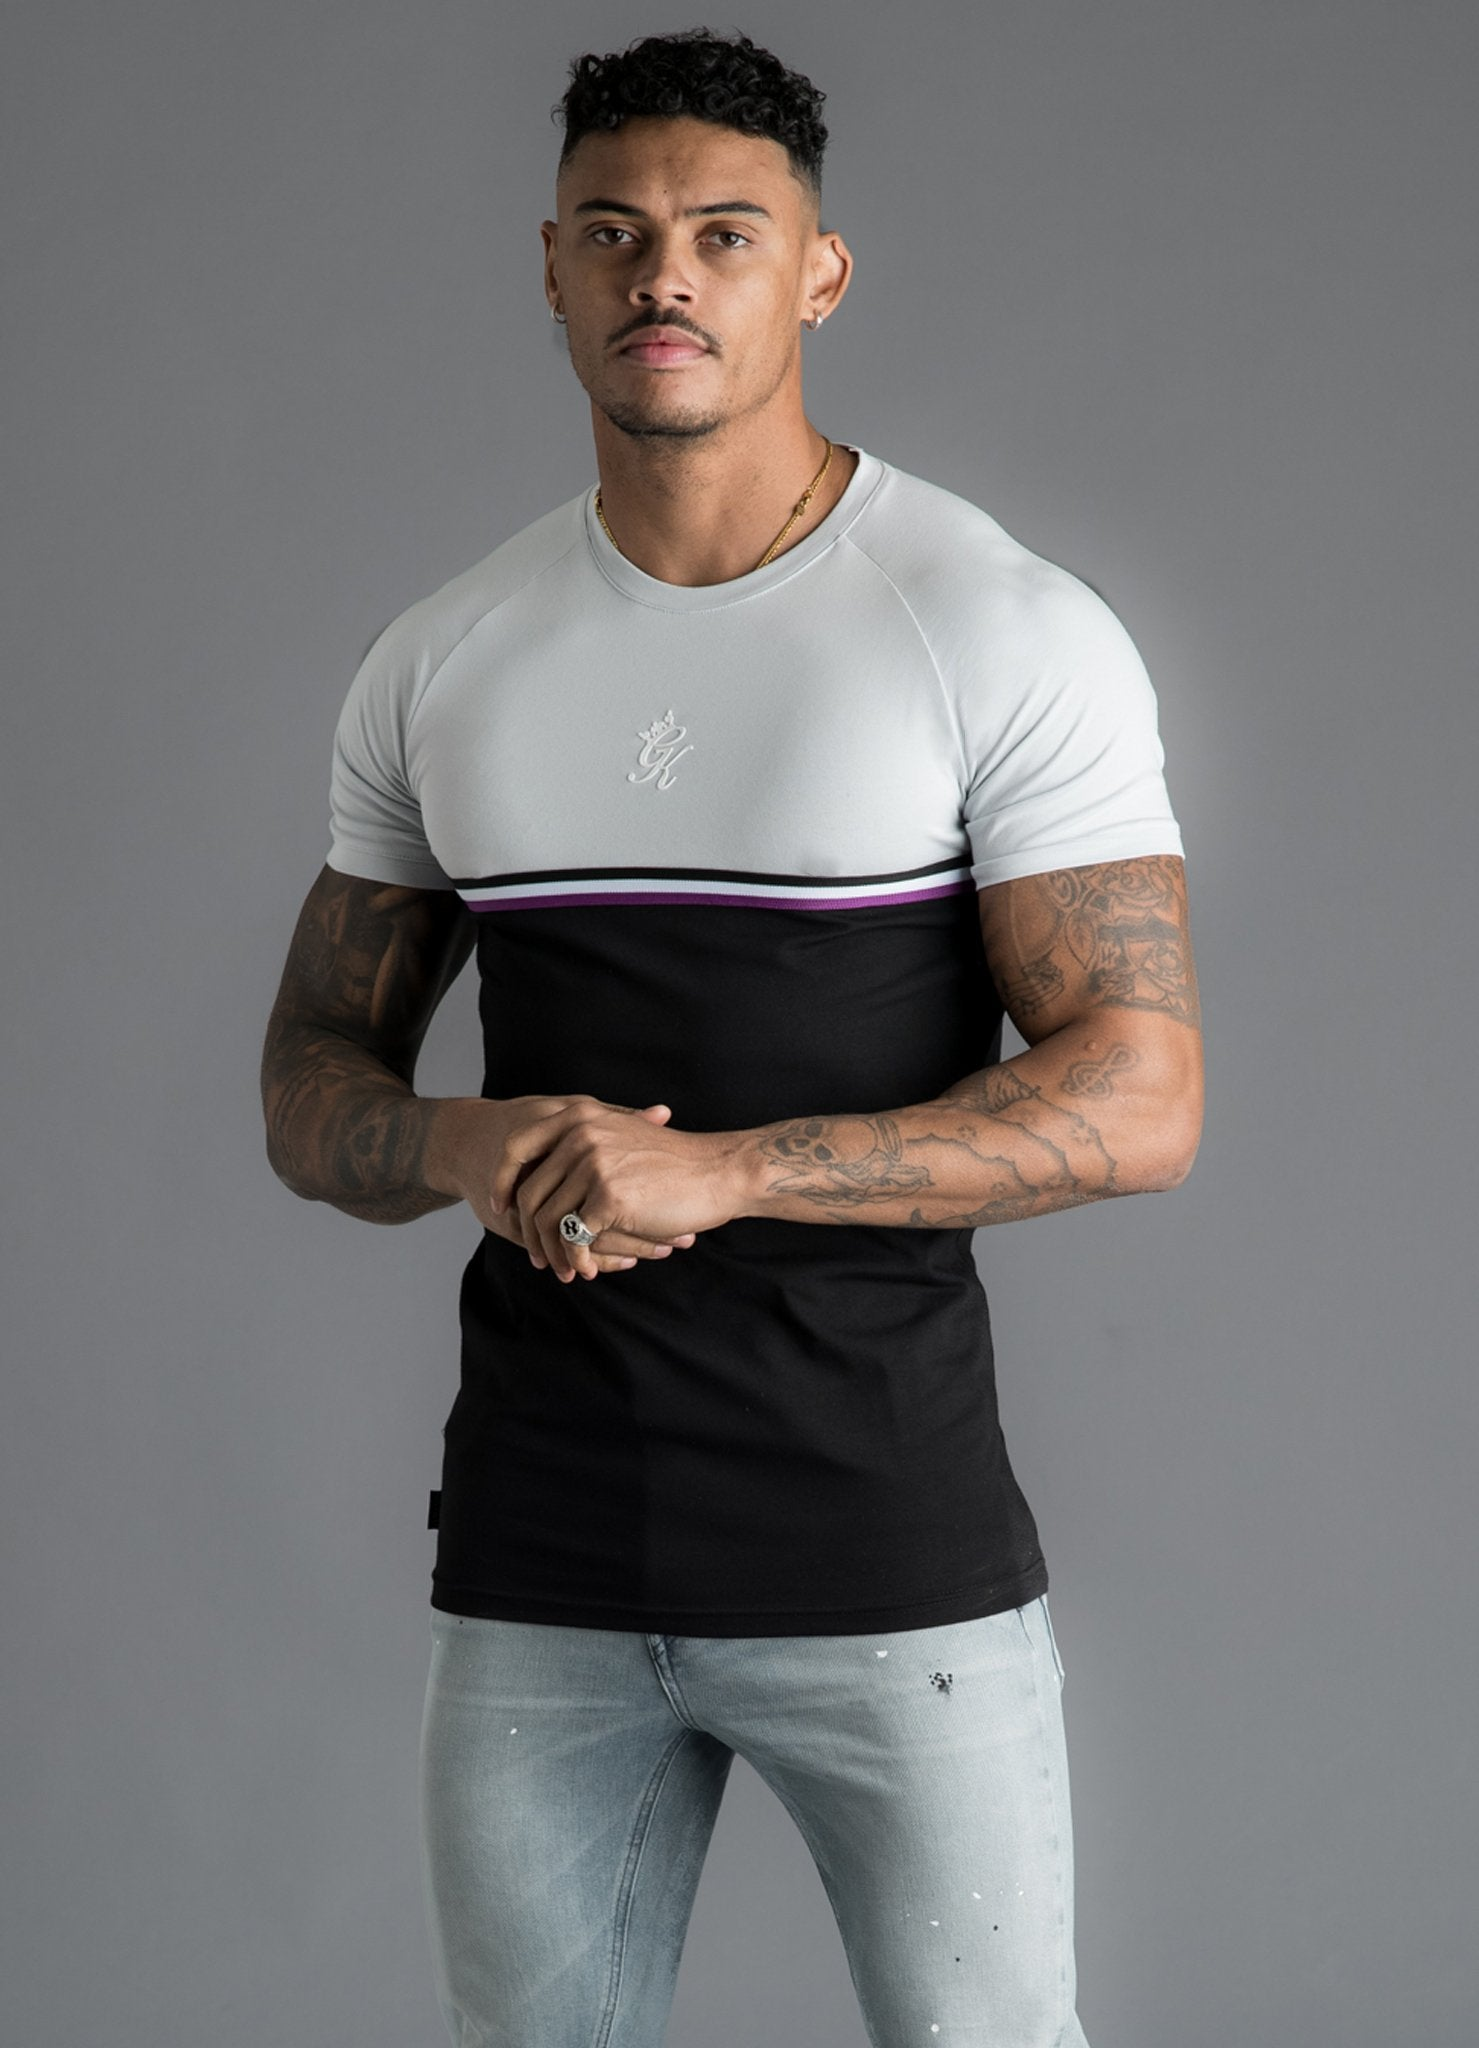 GK Gilchrist T-Shirt - Microchip/Black/Purple